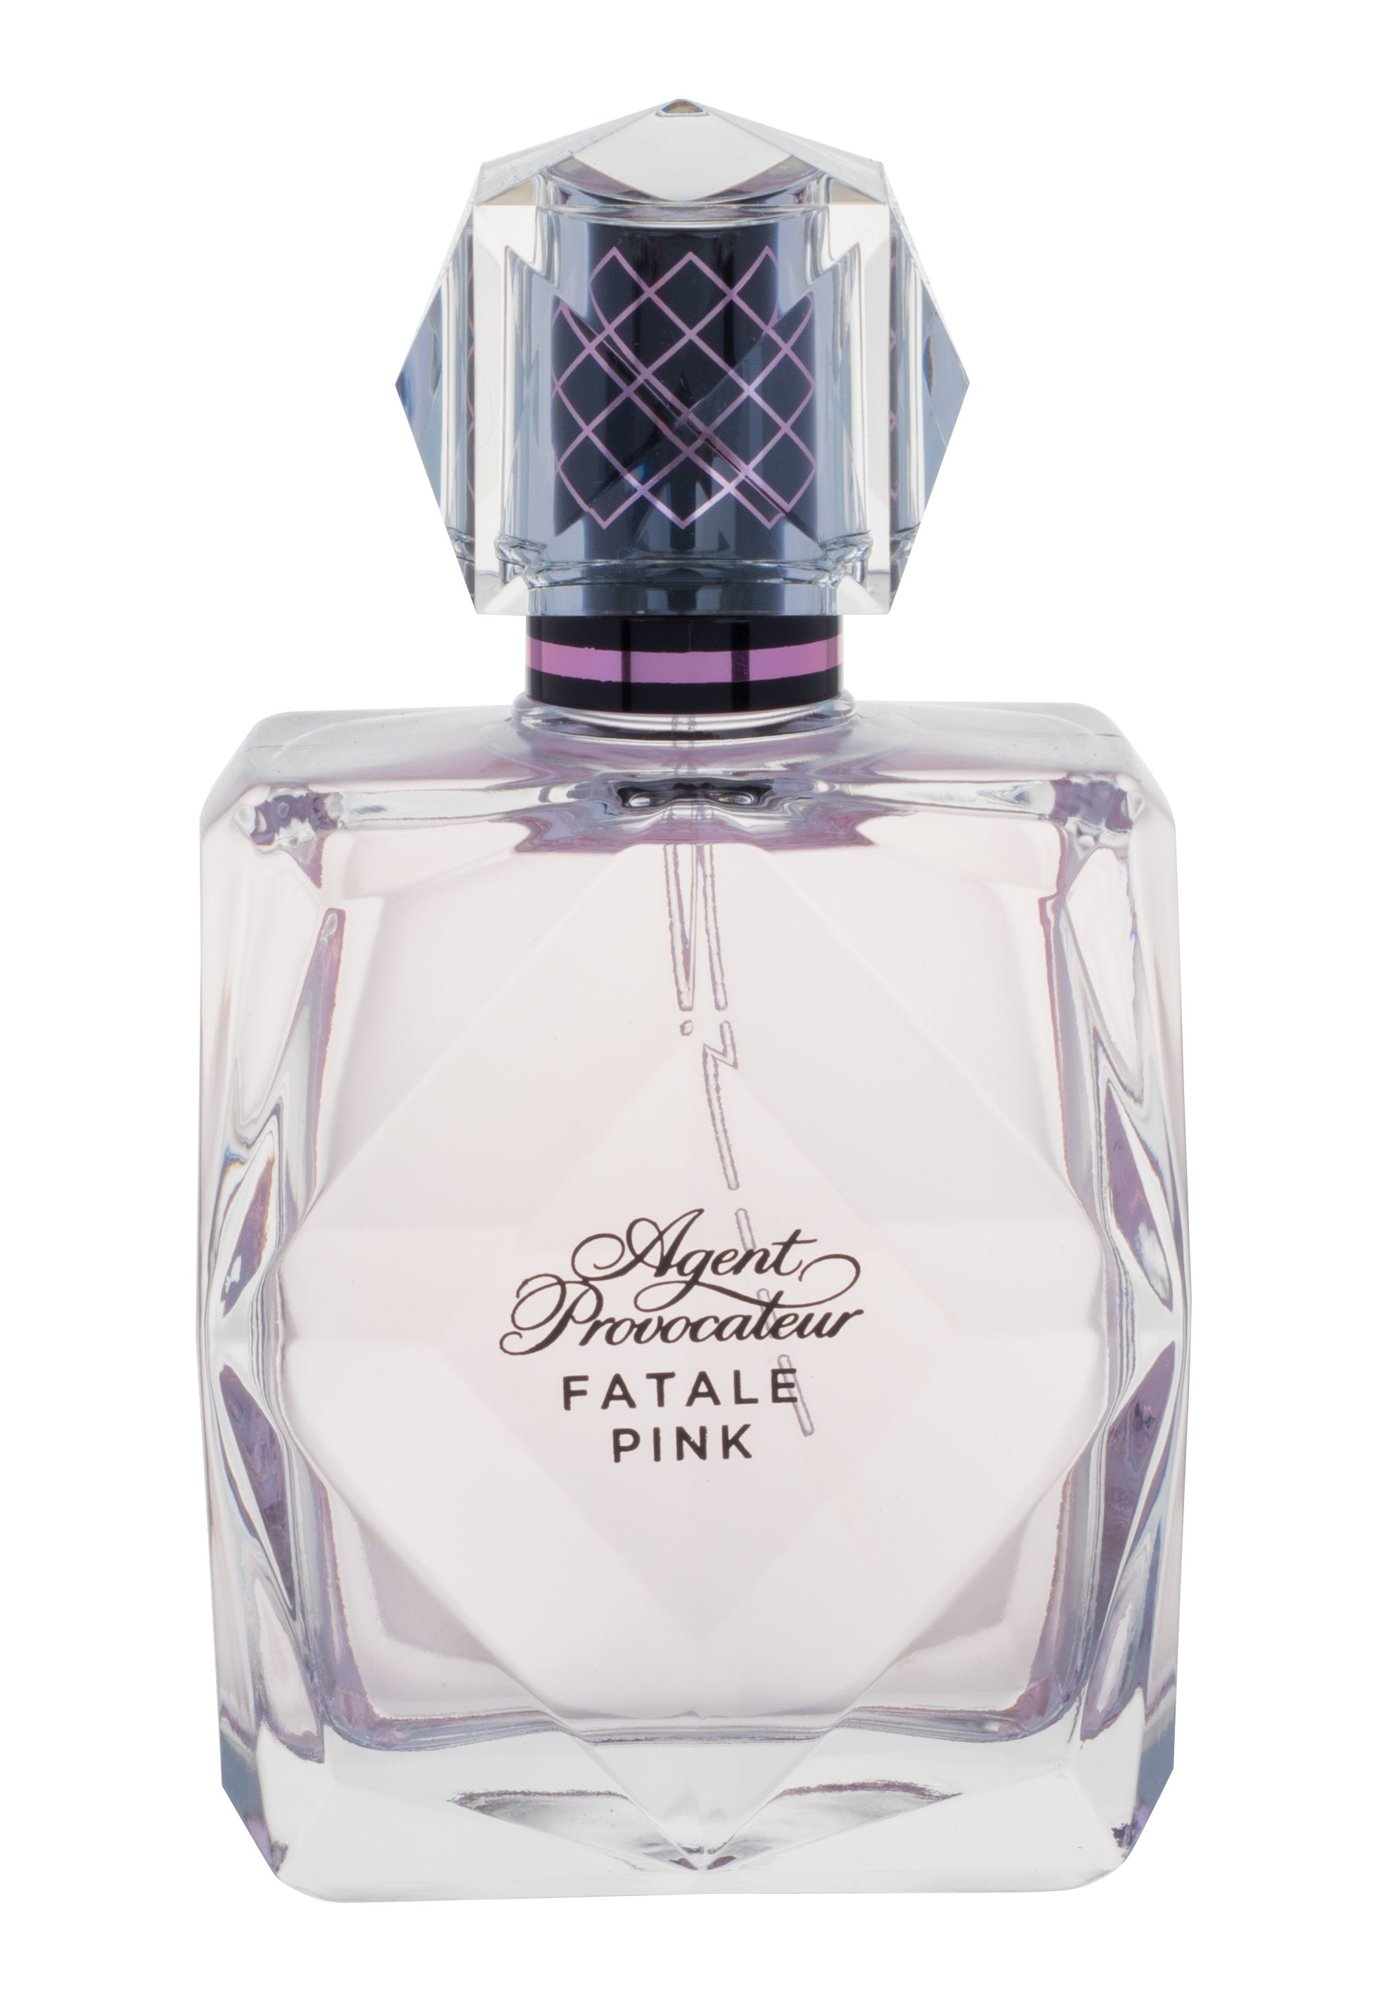 Agent Provocateur Fatale EDP 100ml  Pink